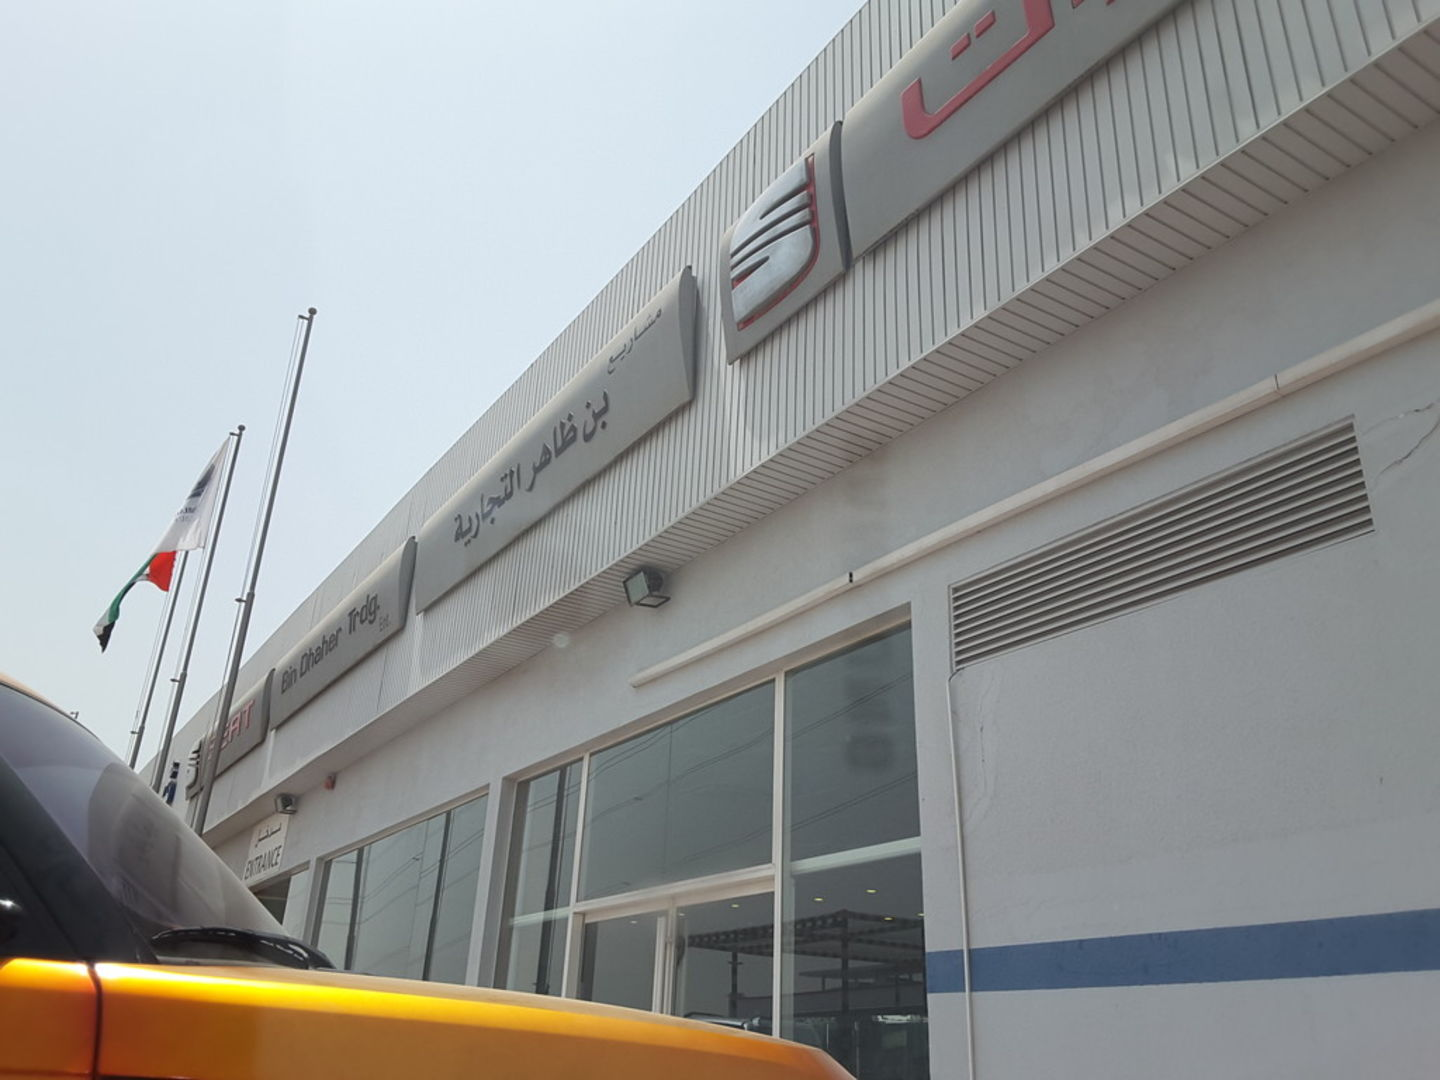 HiDubai-business-bin-dhaher-trading-enterprises-transport-vehicle-services-car-showrooms-service-centres-umm-ramool-dubai-2